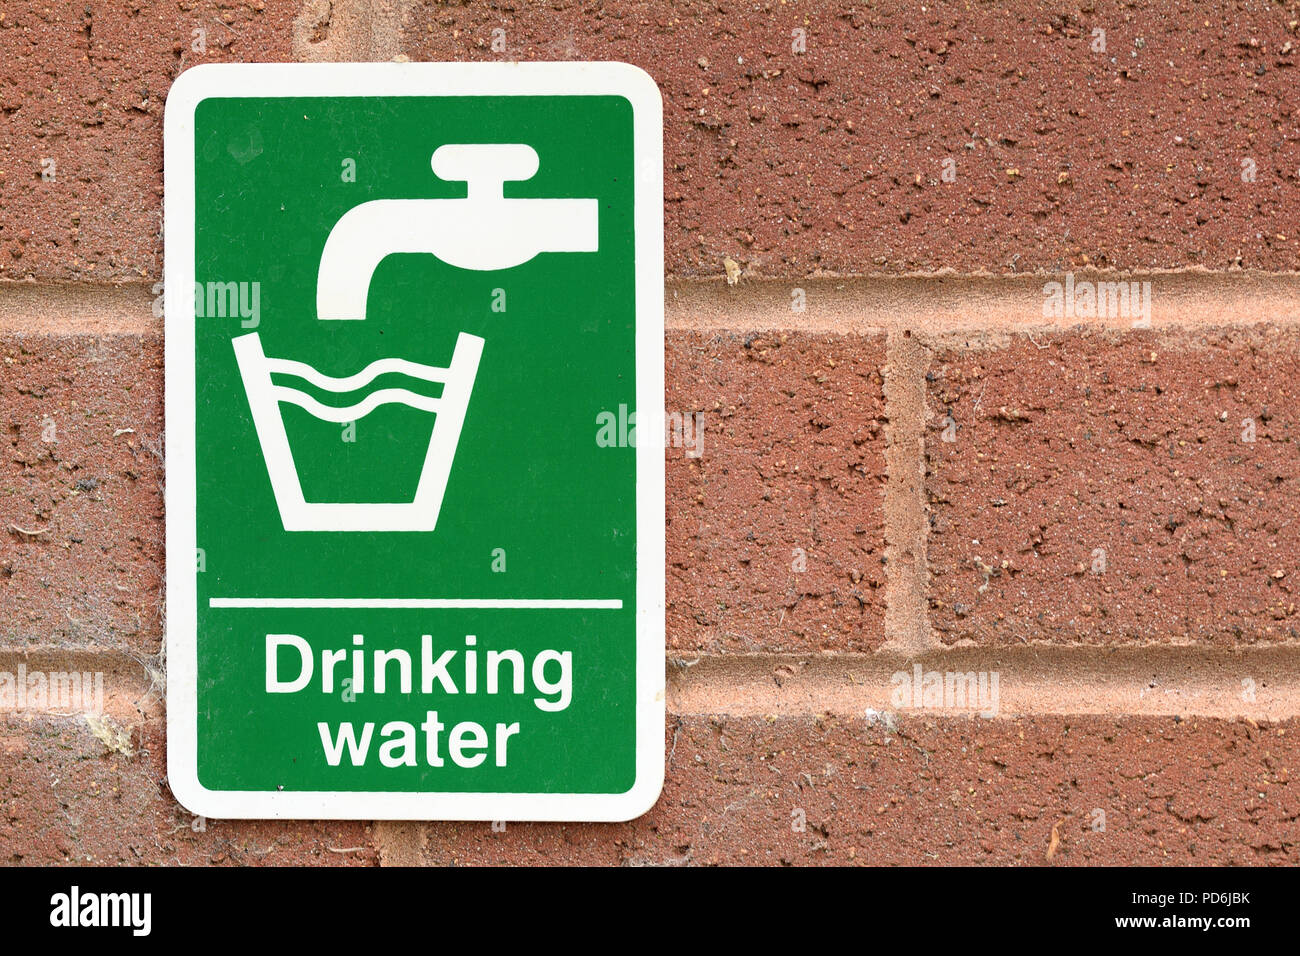 Drinking water sign with white text and tap faucet symbol and glass symbol on green background on red brick wall. Environmental water issues concept - Stock Image